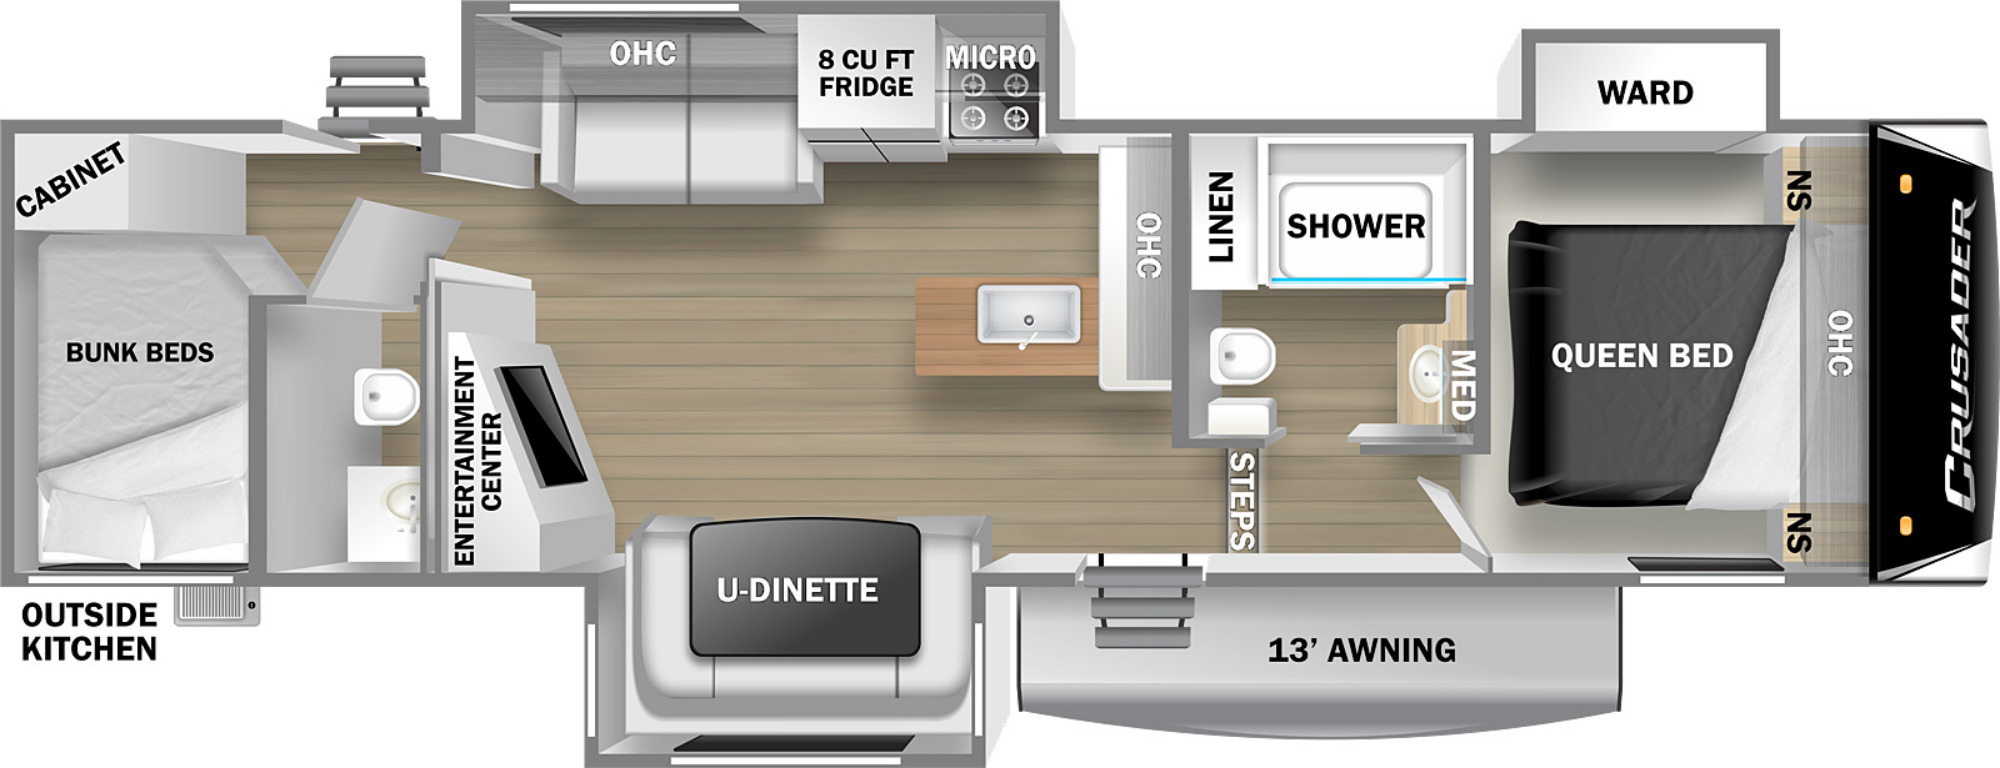 View Floor Plan for 2022 PRIME TIME CRUSADER LITE 33BH